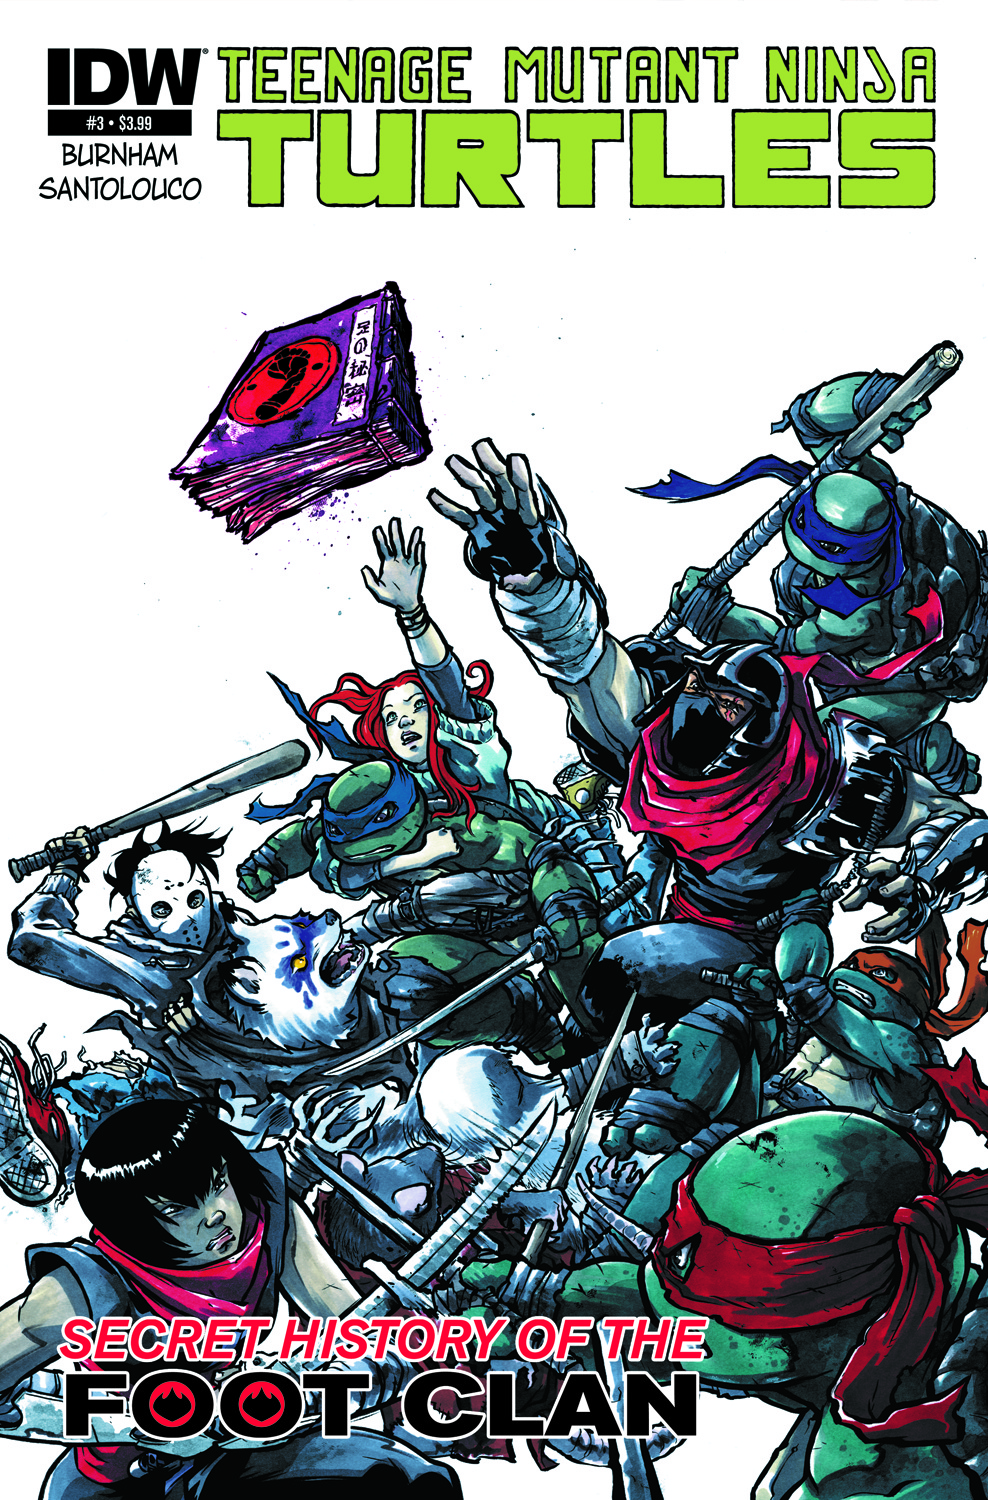 TMNT Secret History of the Foot Clan #3